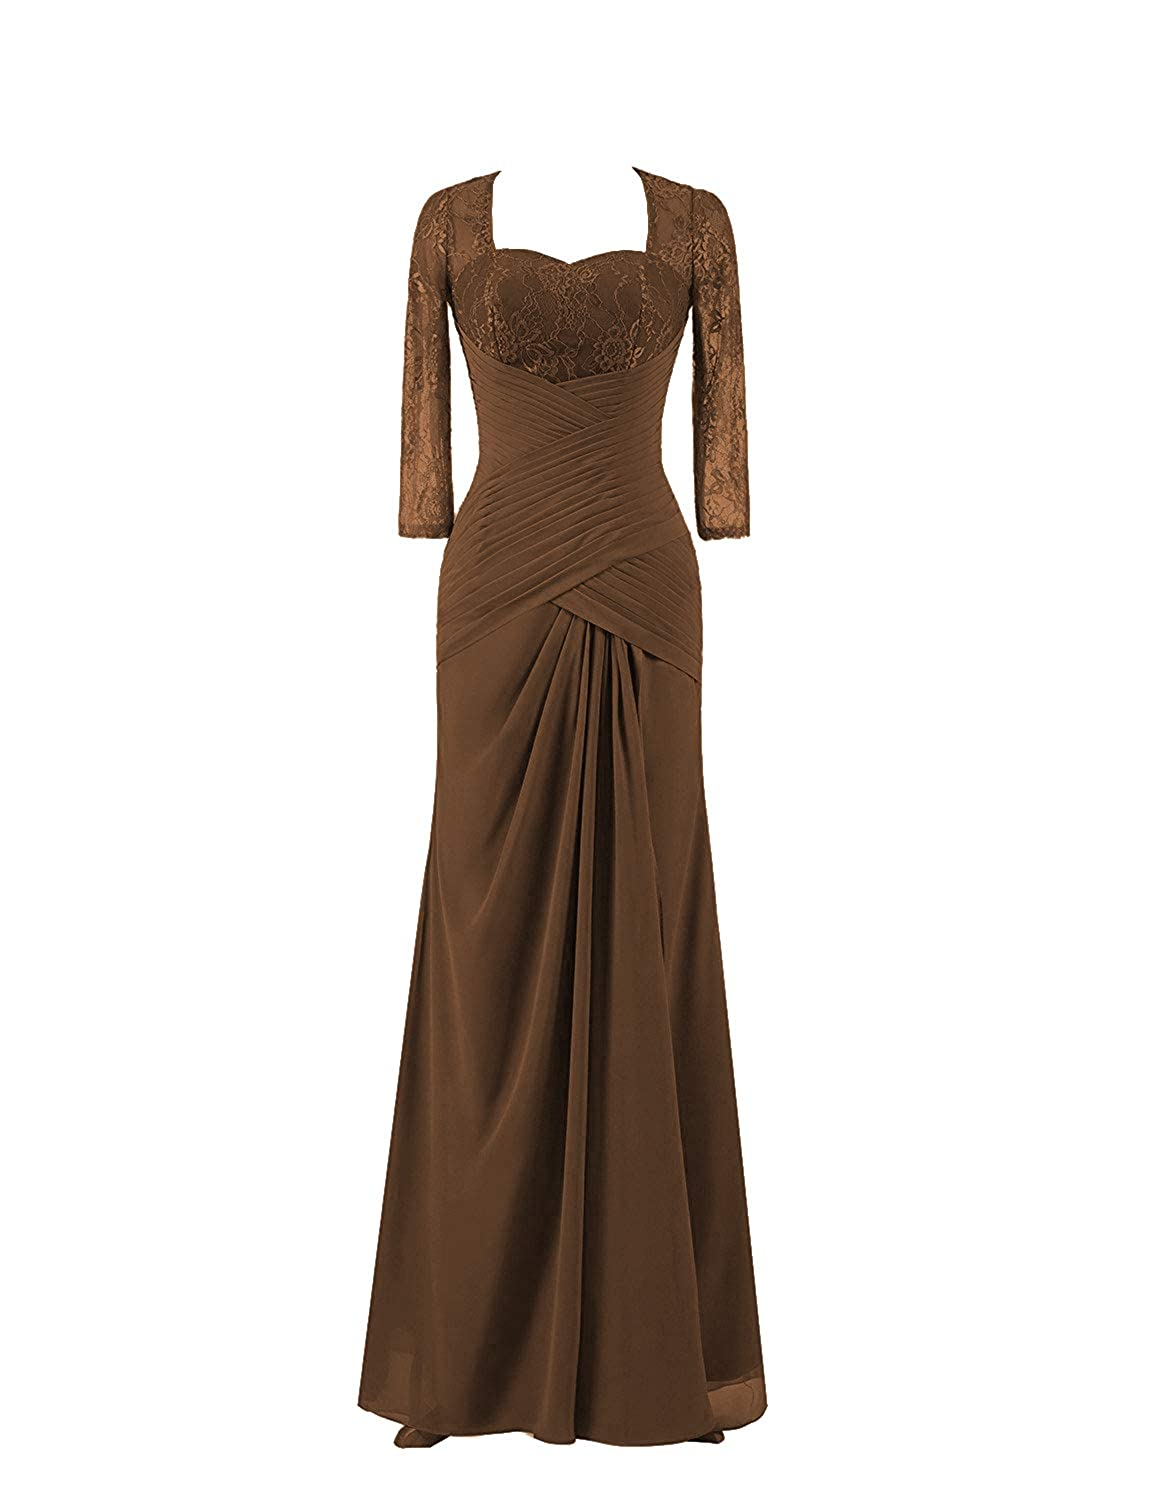 Brown Mother of The Bride Dresses with Long Sleeves Plus Size Evening Gown Lace Mothers Dress Formal Gowns